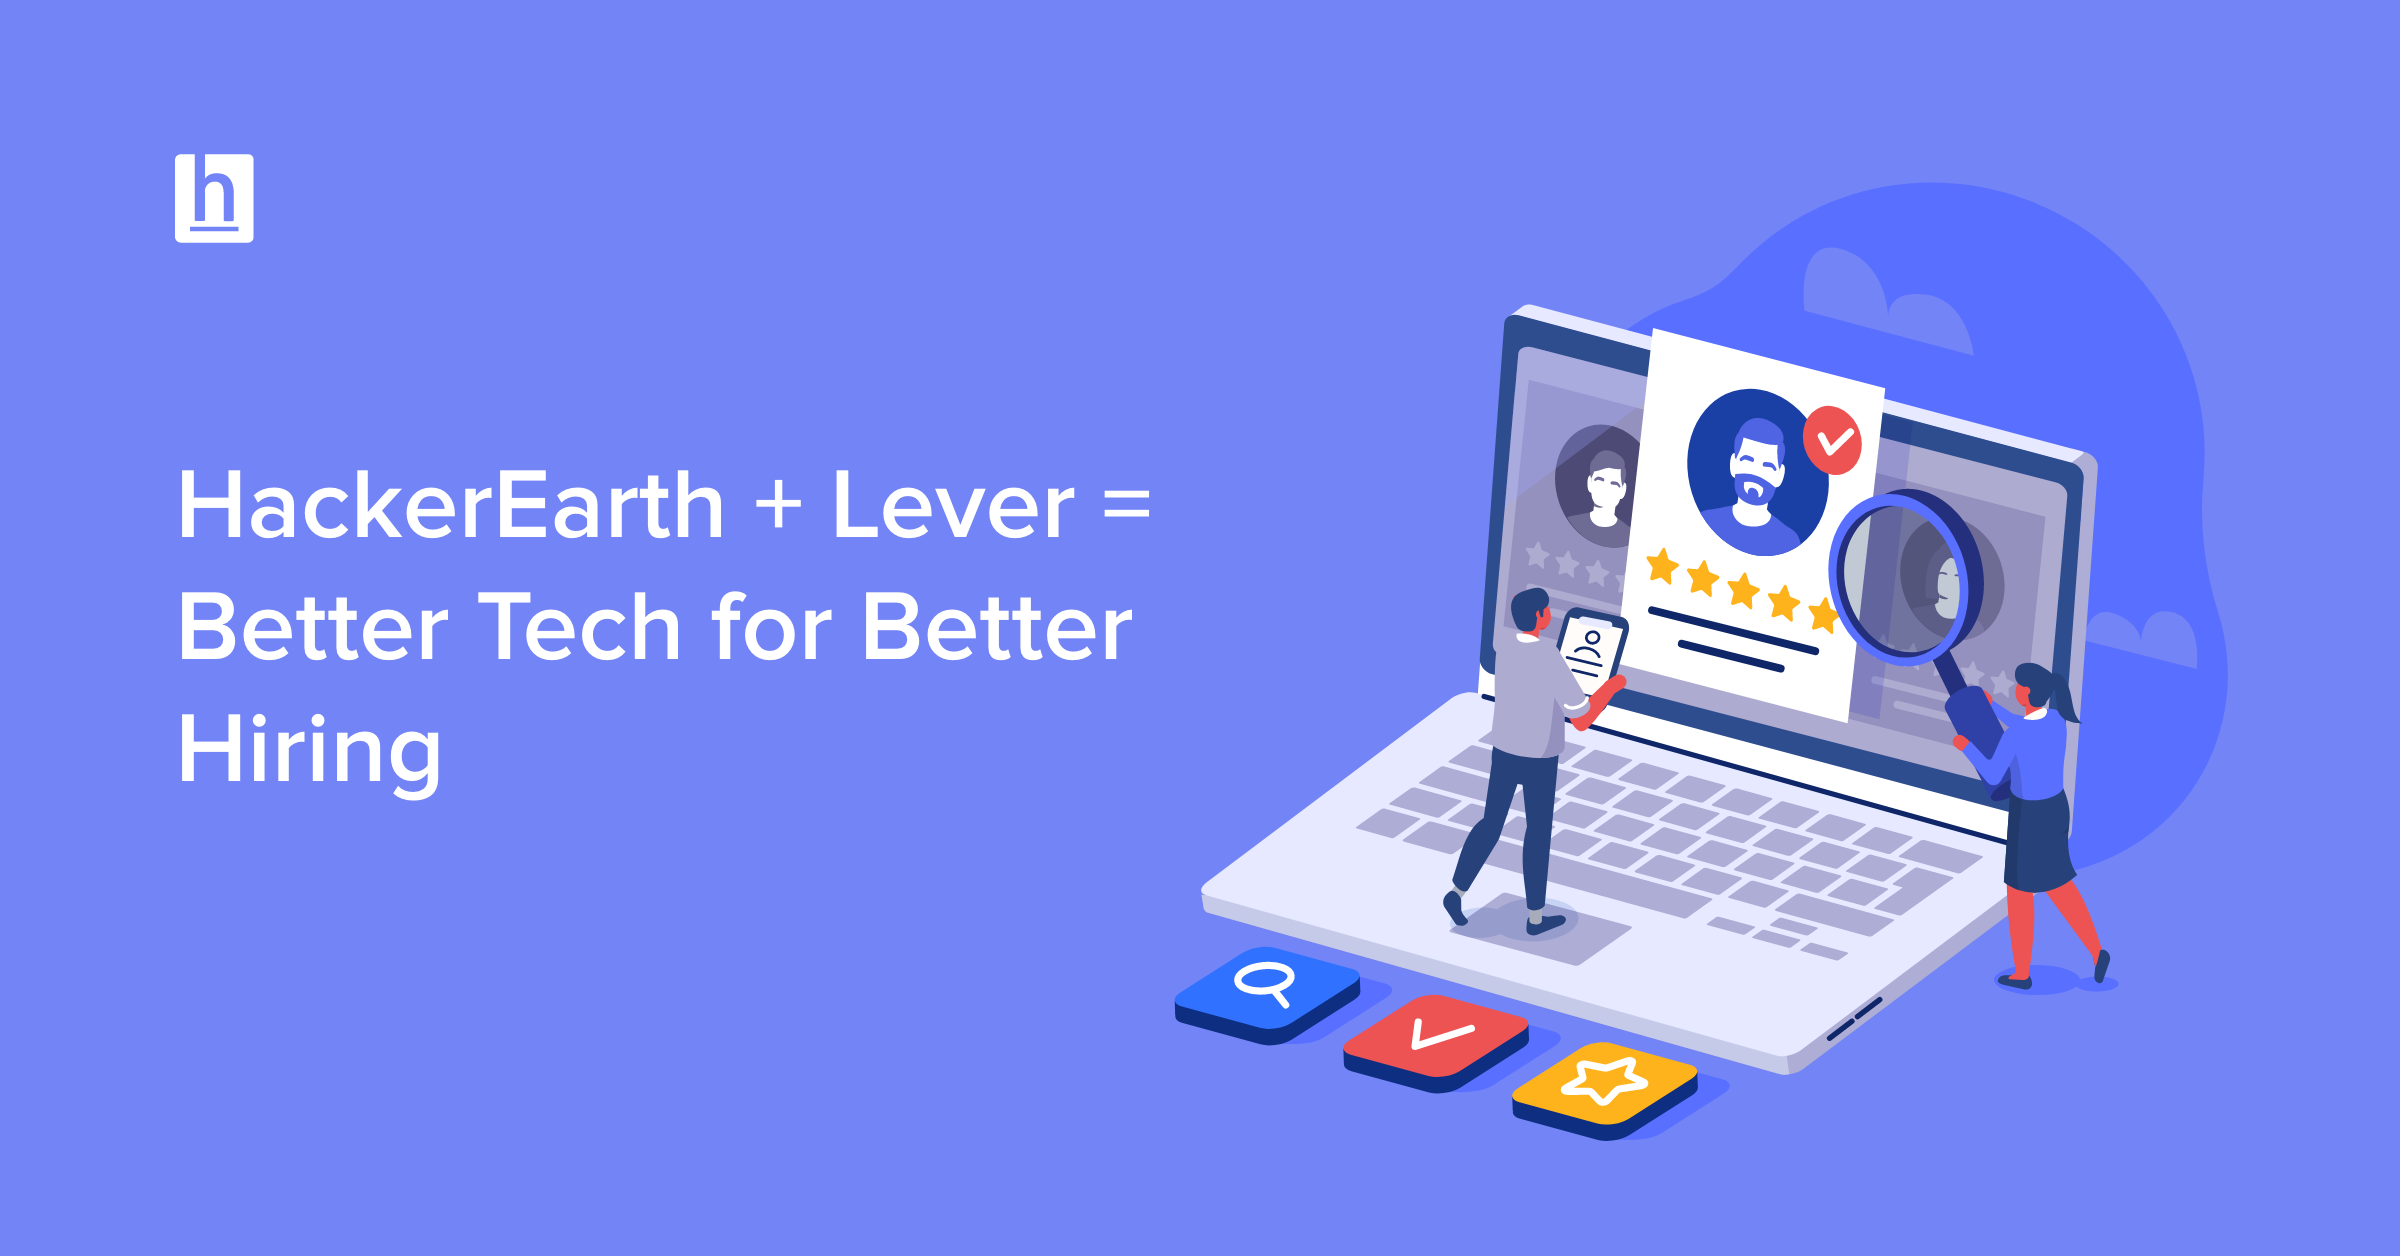 HackerEarth and Lever